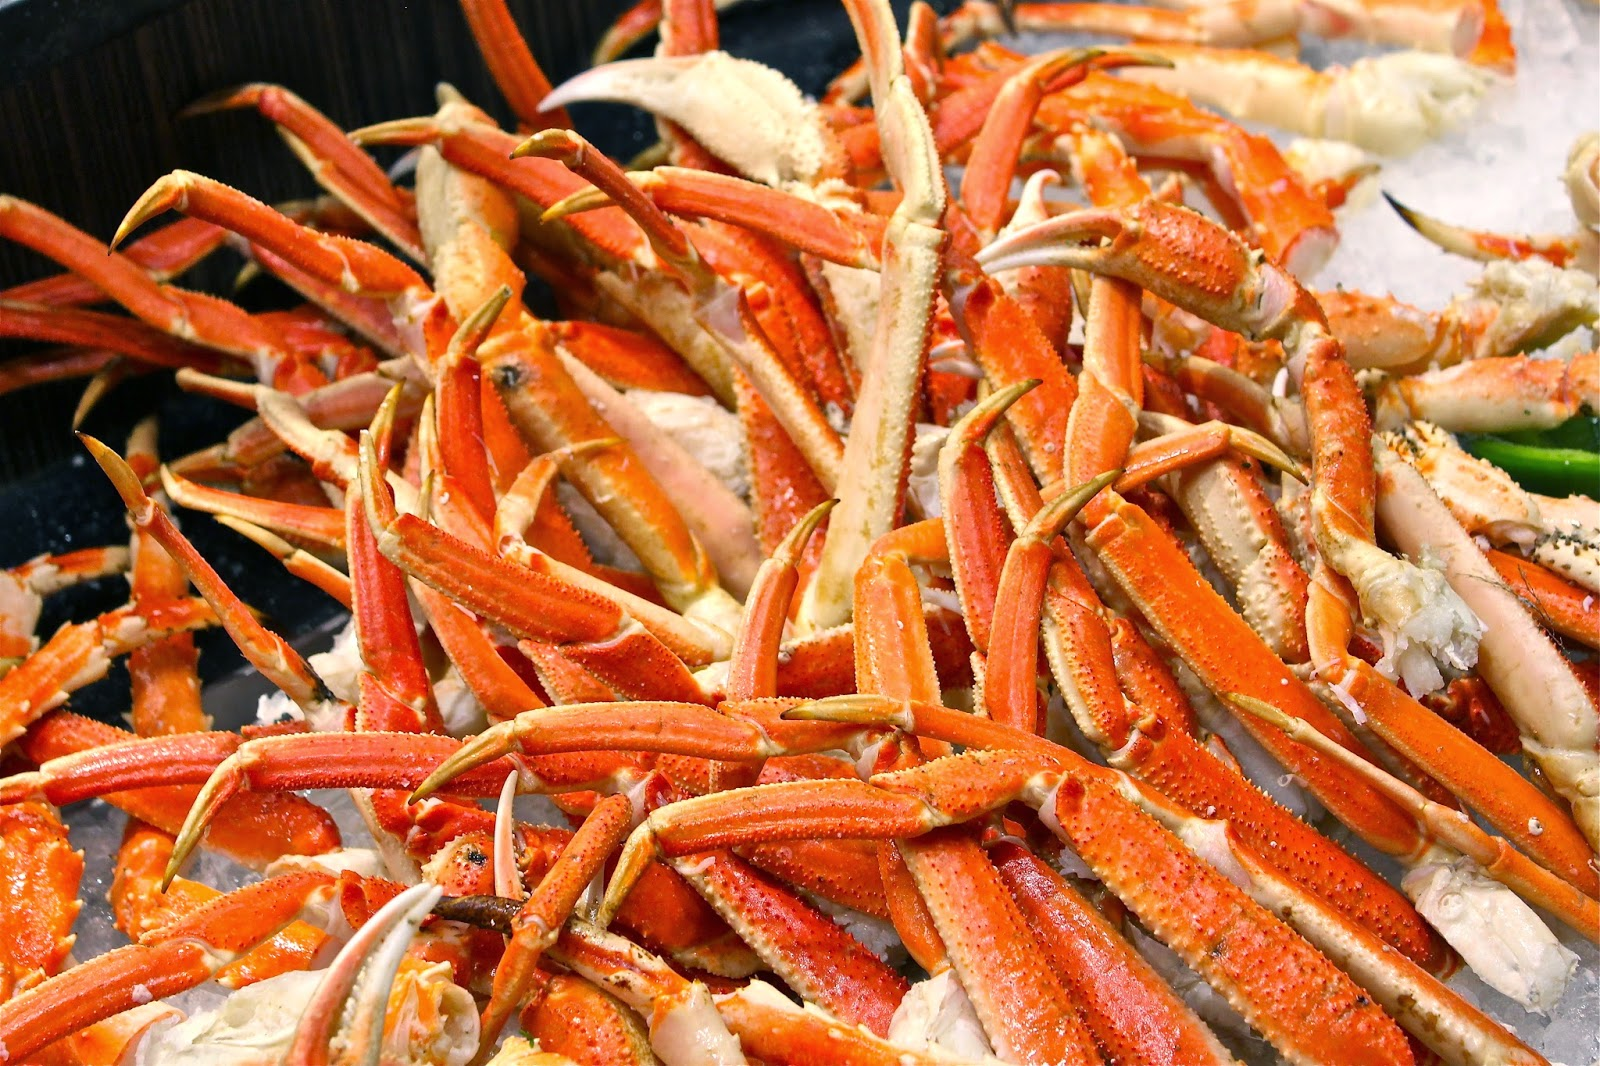 Of Course Apart From The Snow Crab Legs They Also Offer Fresh Seafood Such As Prawns And Scallops Which We Found To Be Value For Money Price